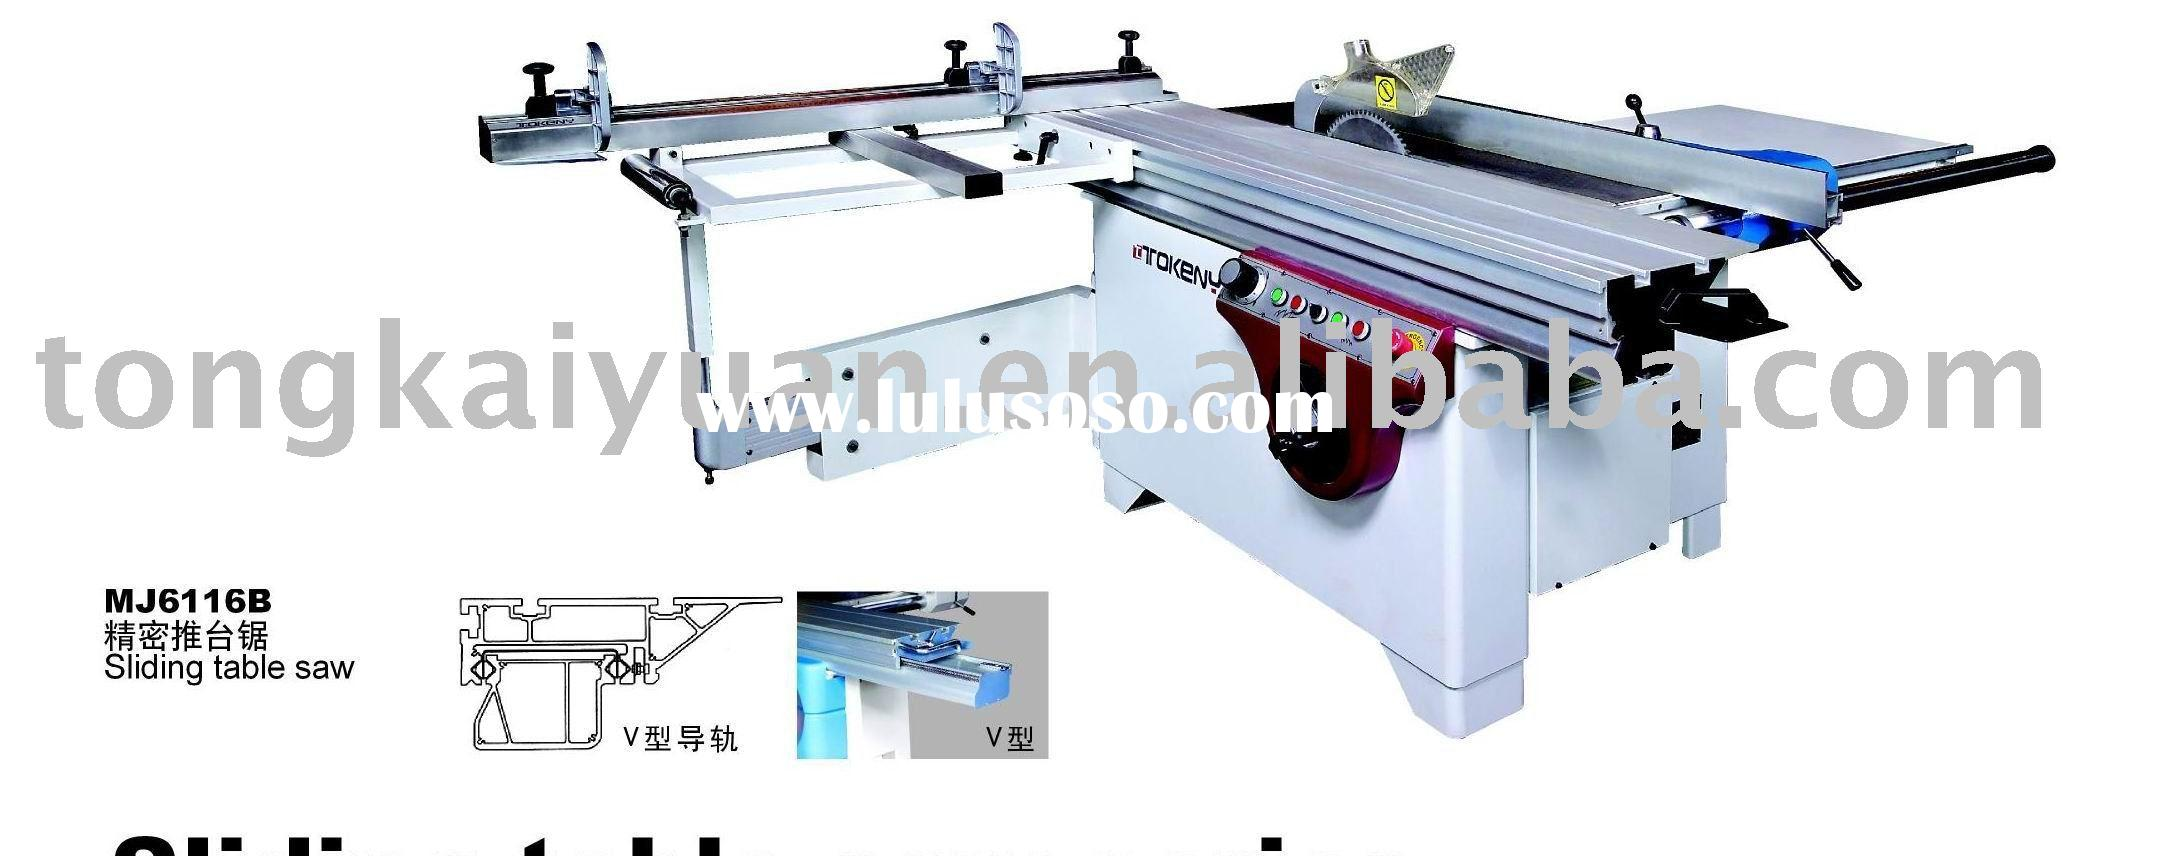 mini cut saw machine/ wood saw machine /panel saw machine